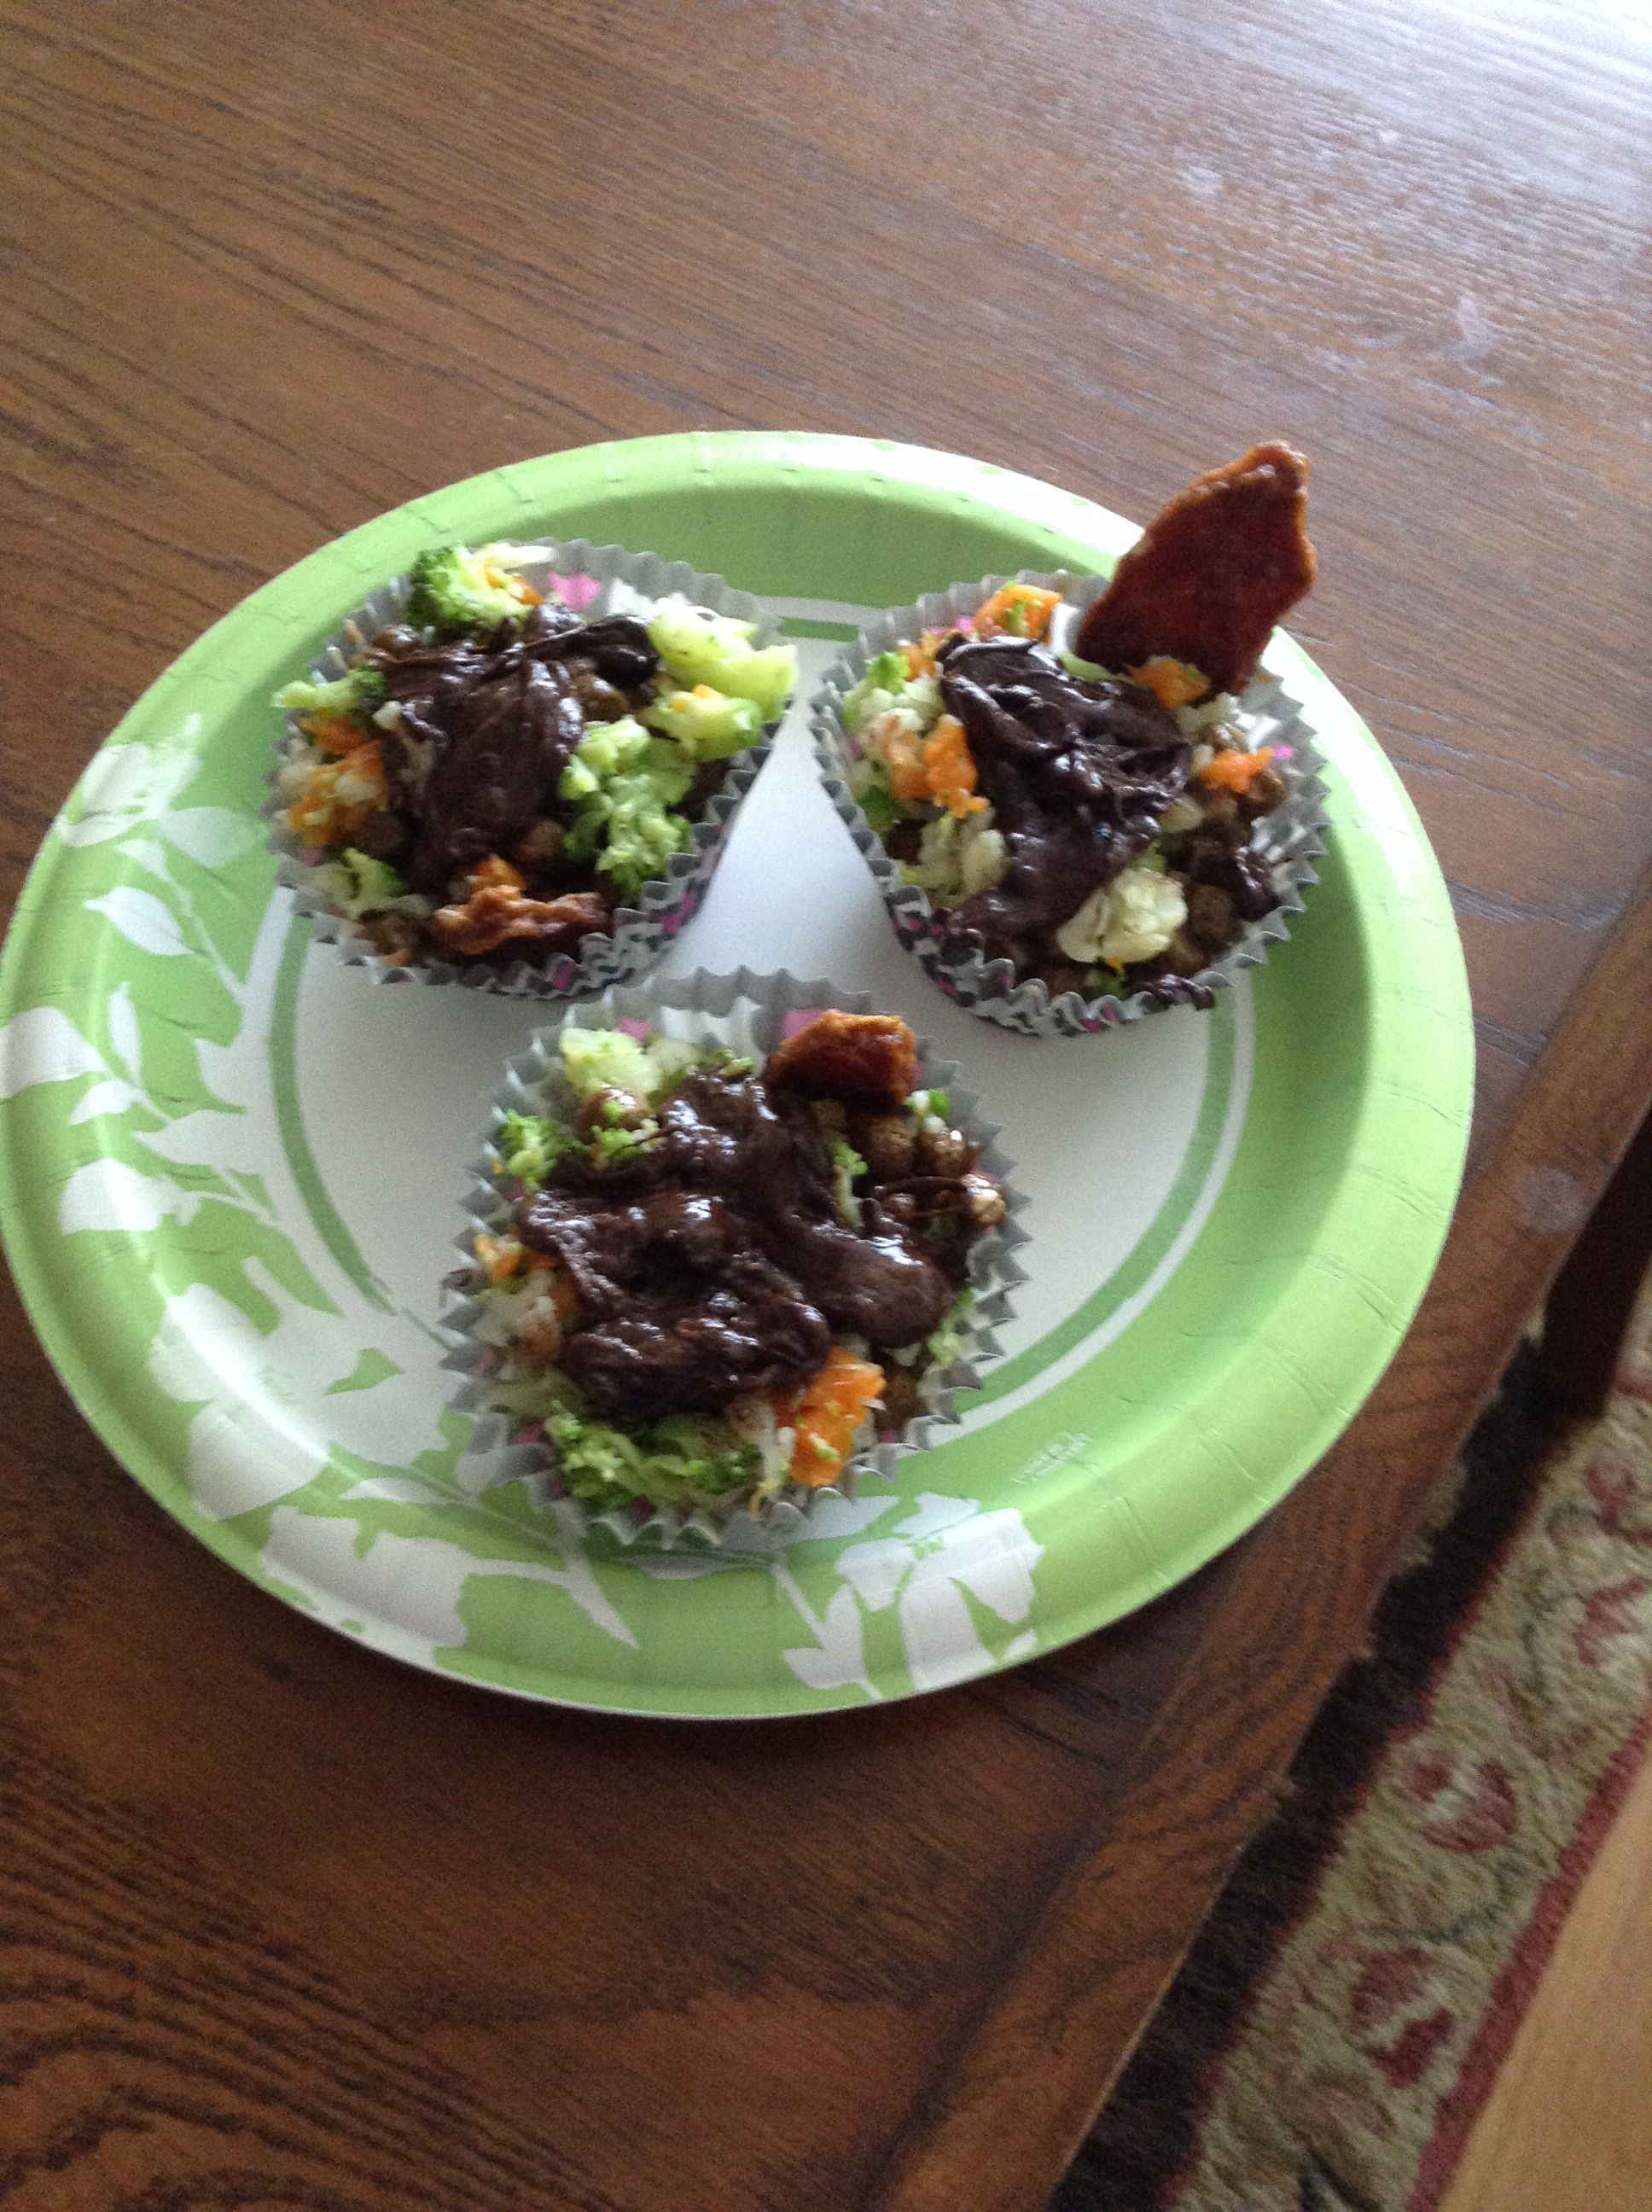 Honey,kibble,peanut butter,veggies,melted carobs, and your dogs fave treat.my dog really loved it.